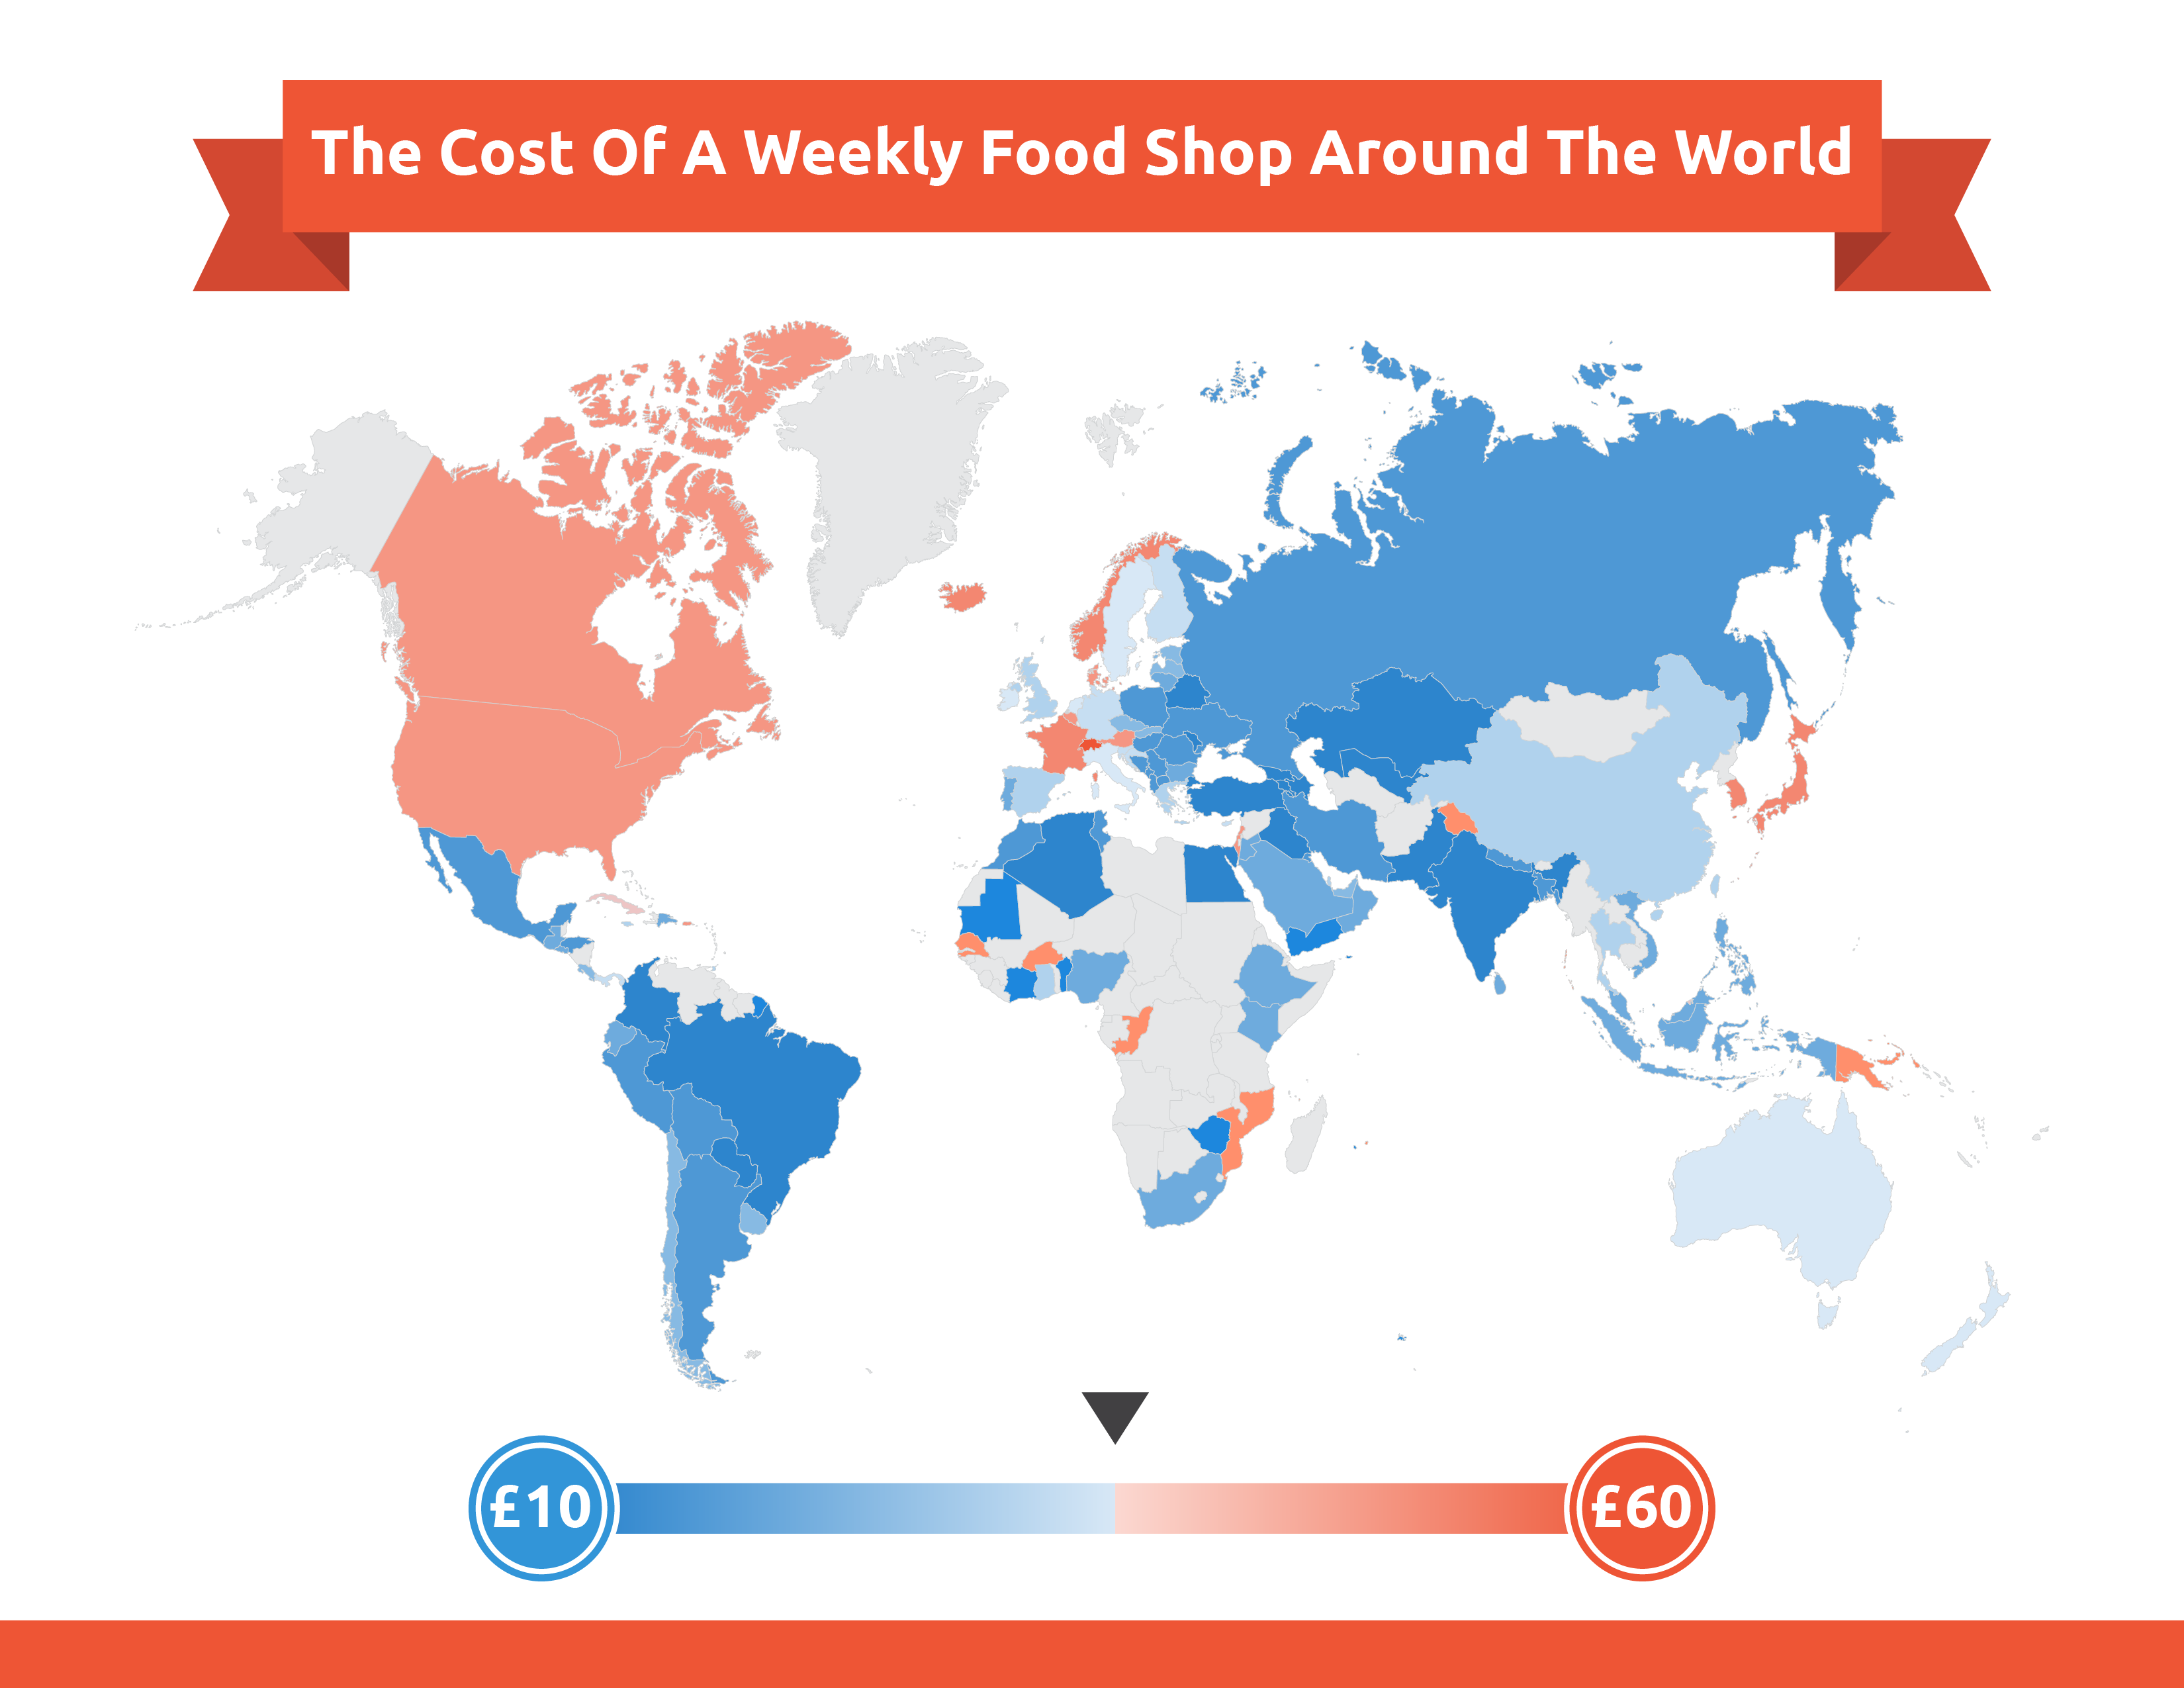 Heatmap of food prices